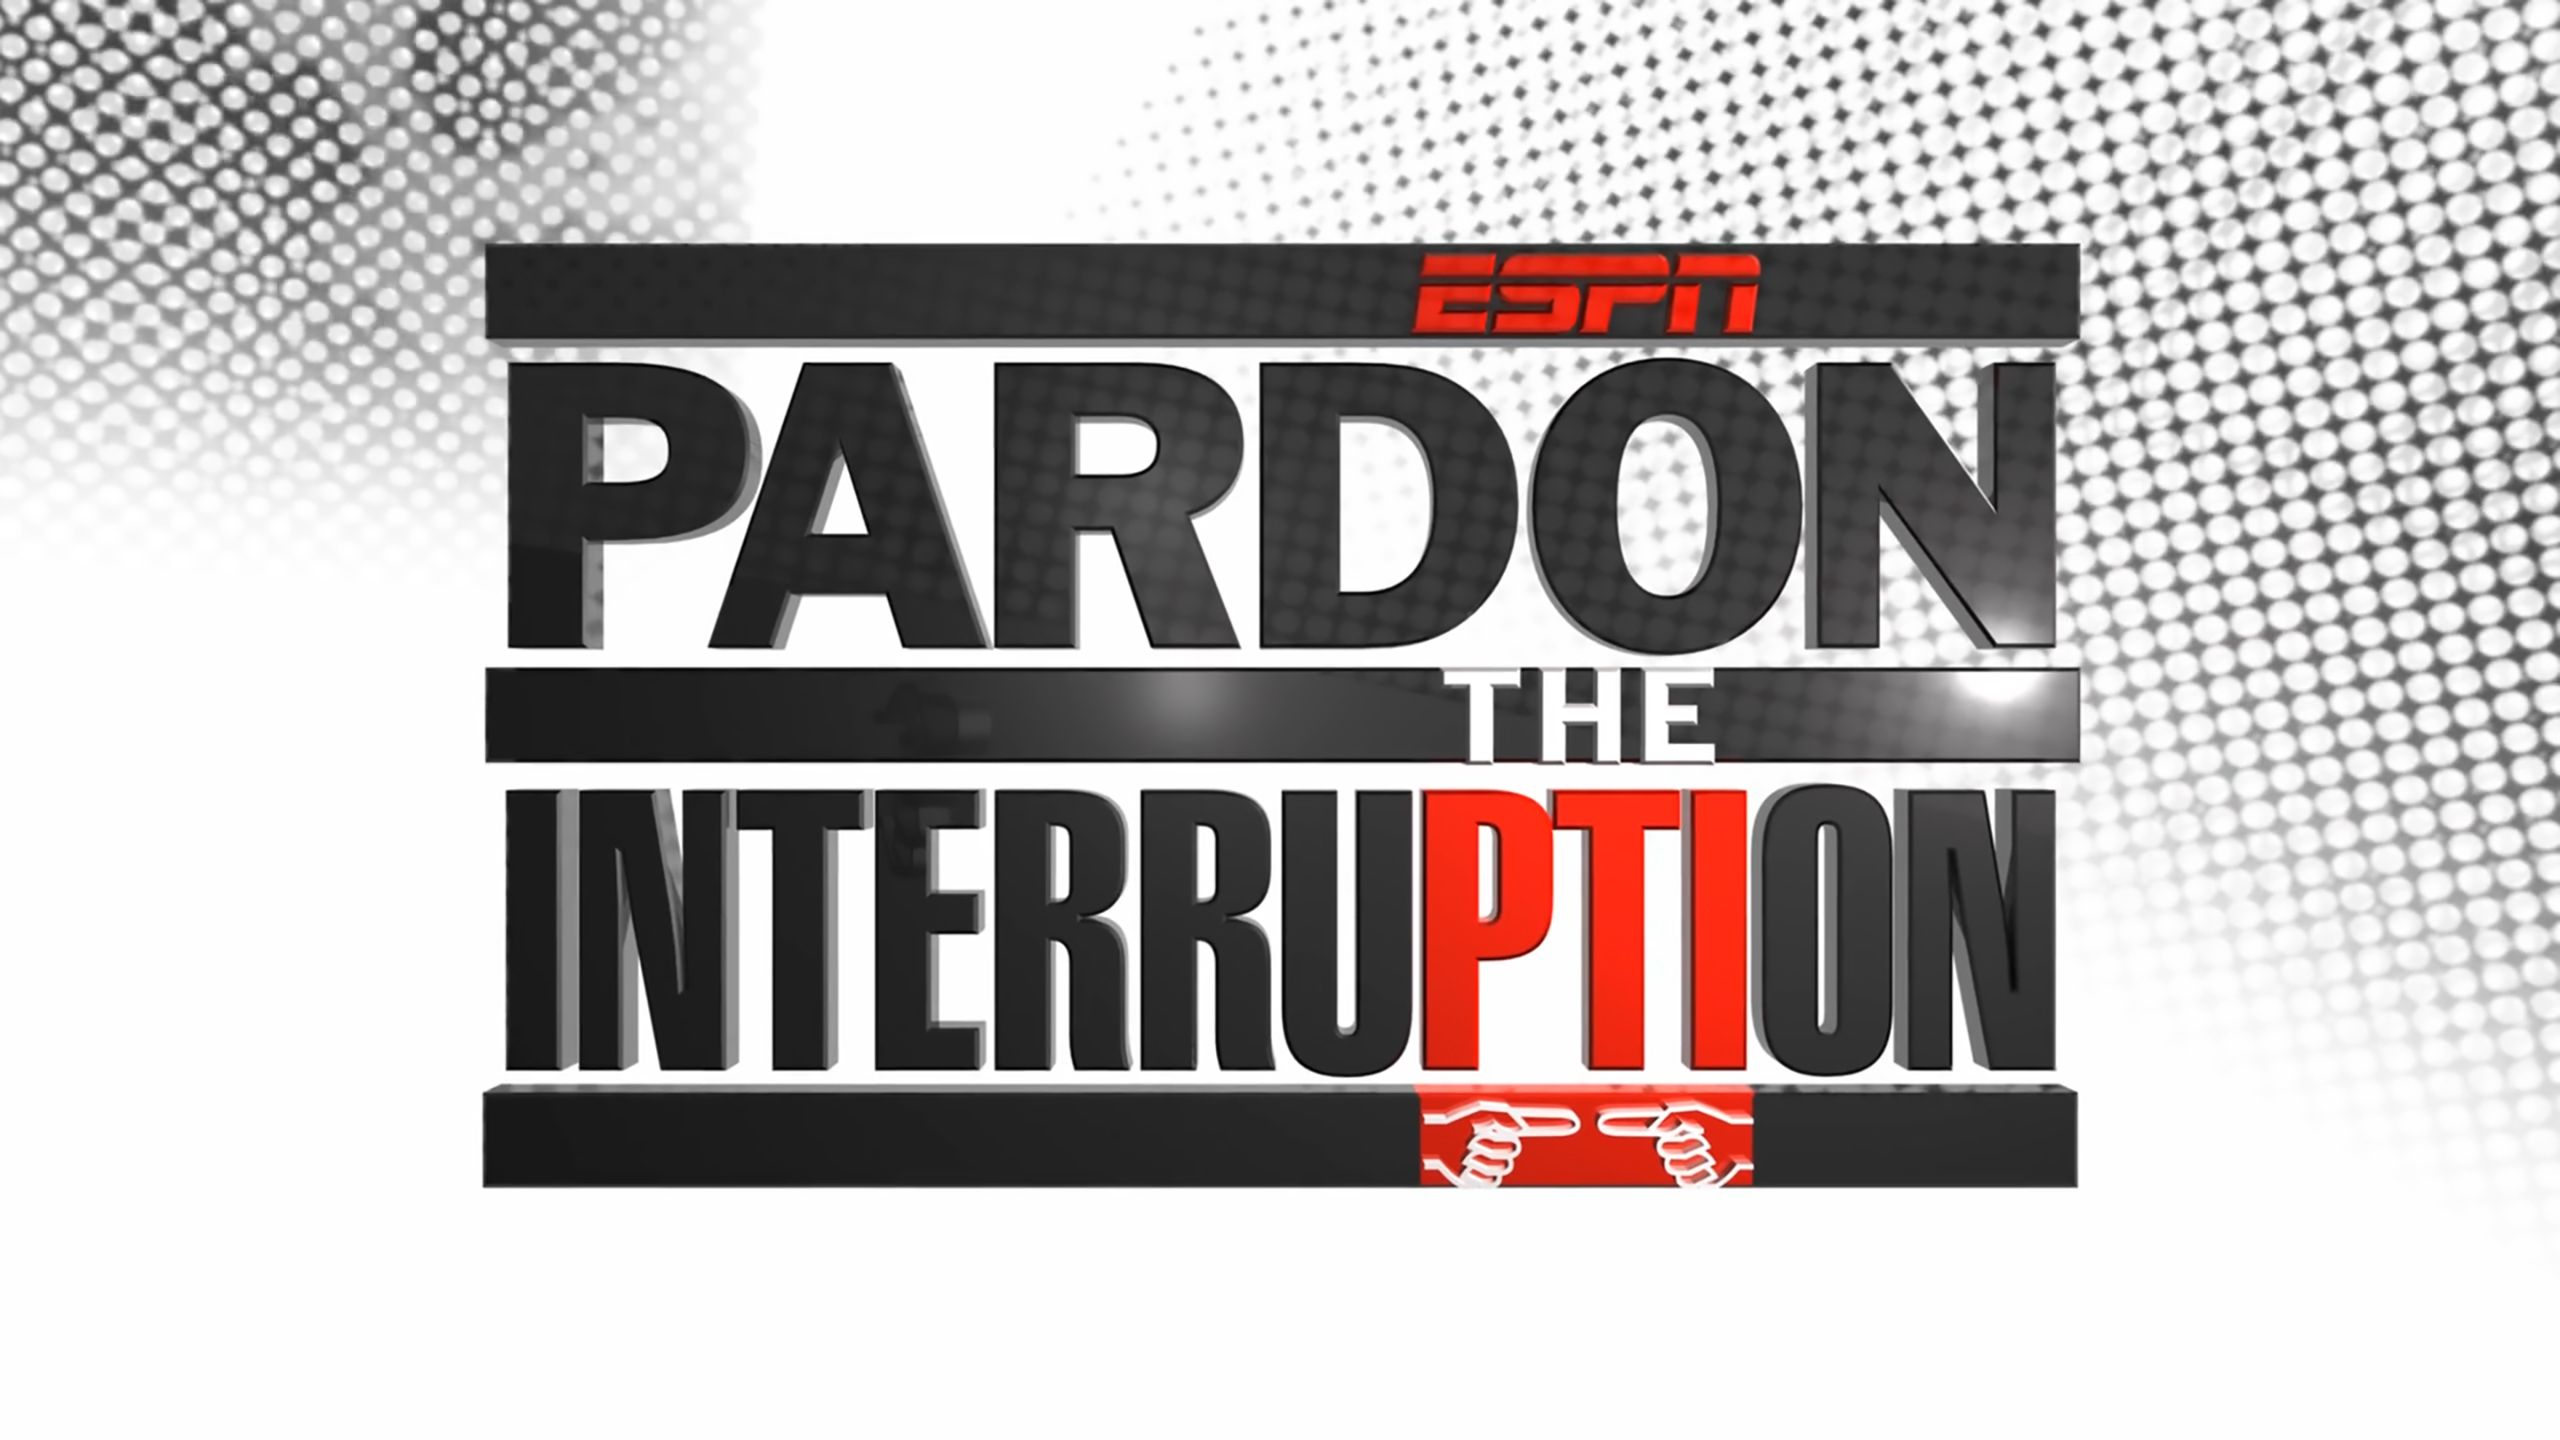 Fri, 11/17 - Pardon The Interruption